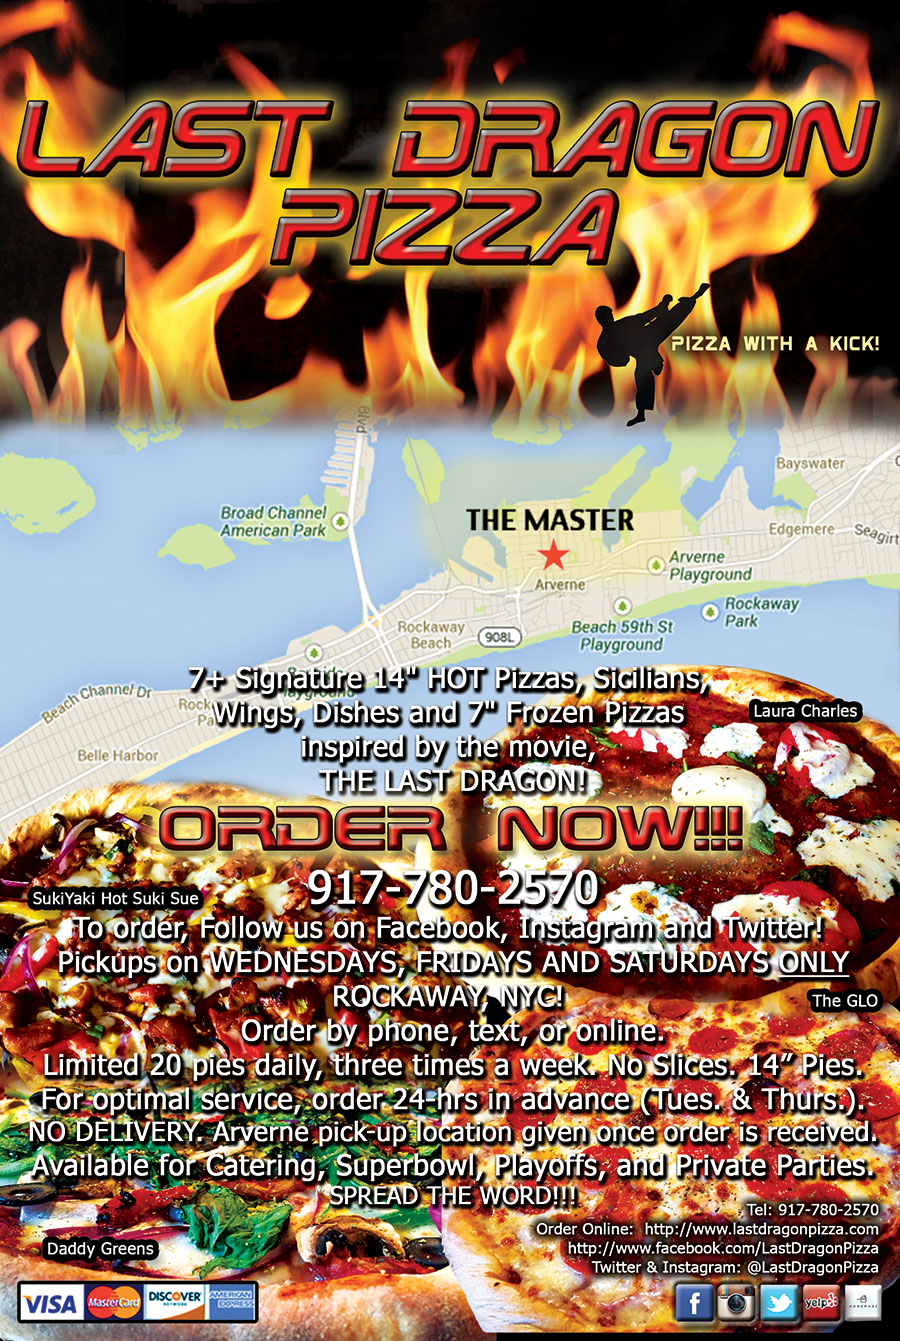 7 Signature 14-inch pizza pies, 7-inch mini frozen pizzas, wings and dishes inspired by the movie, The Last Dragon. Order online. Pickup only Rockaway, NYC